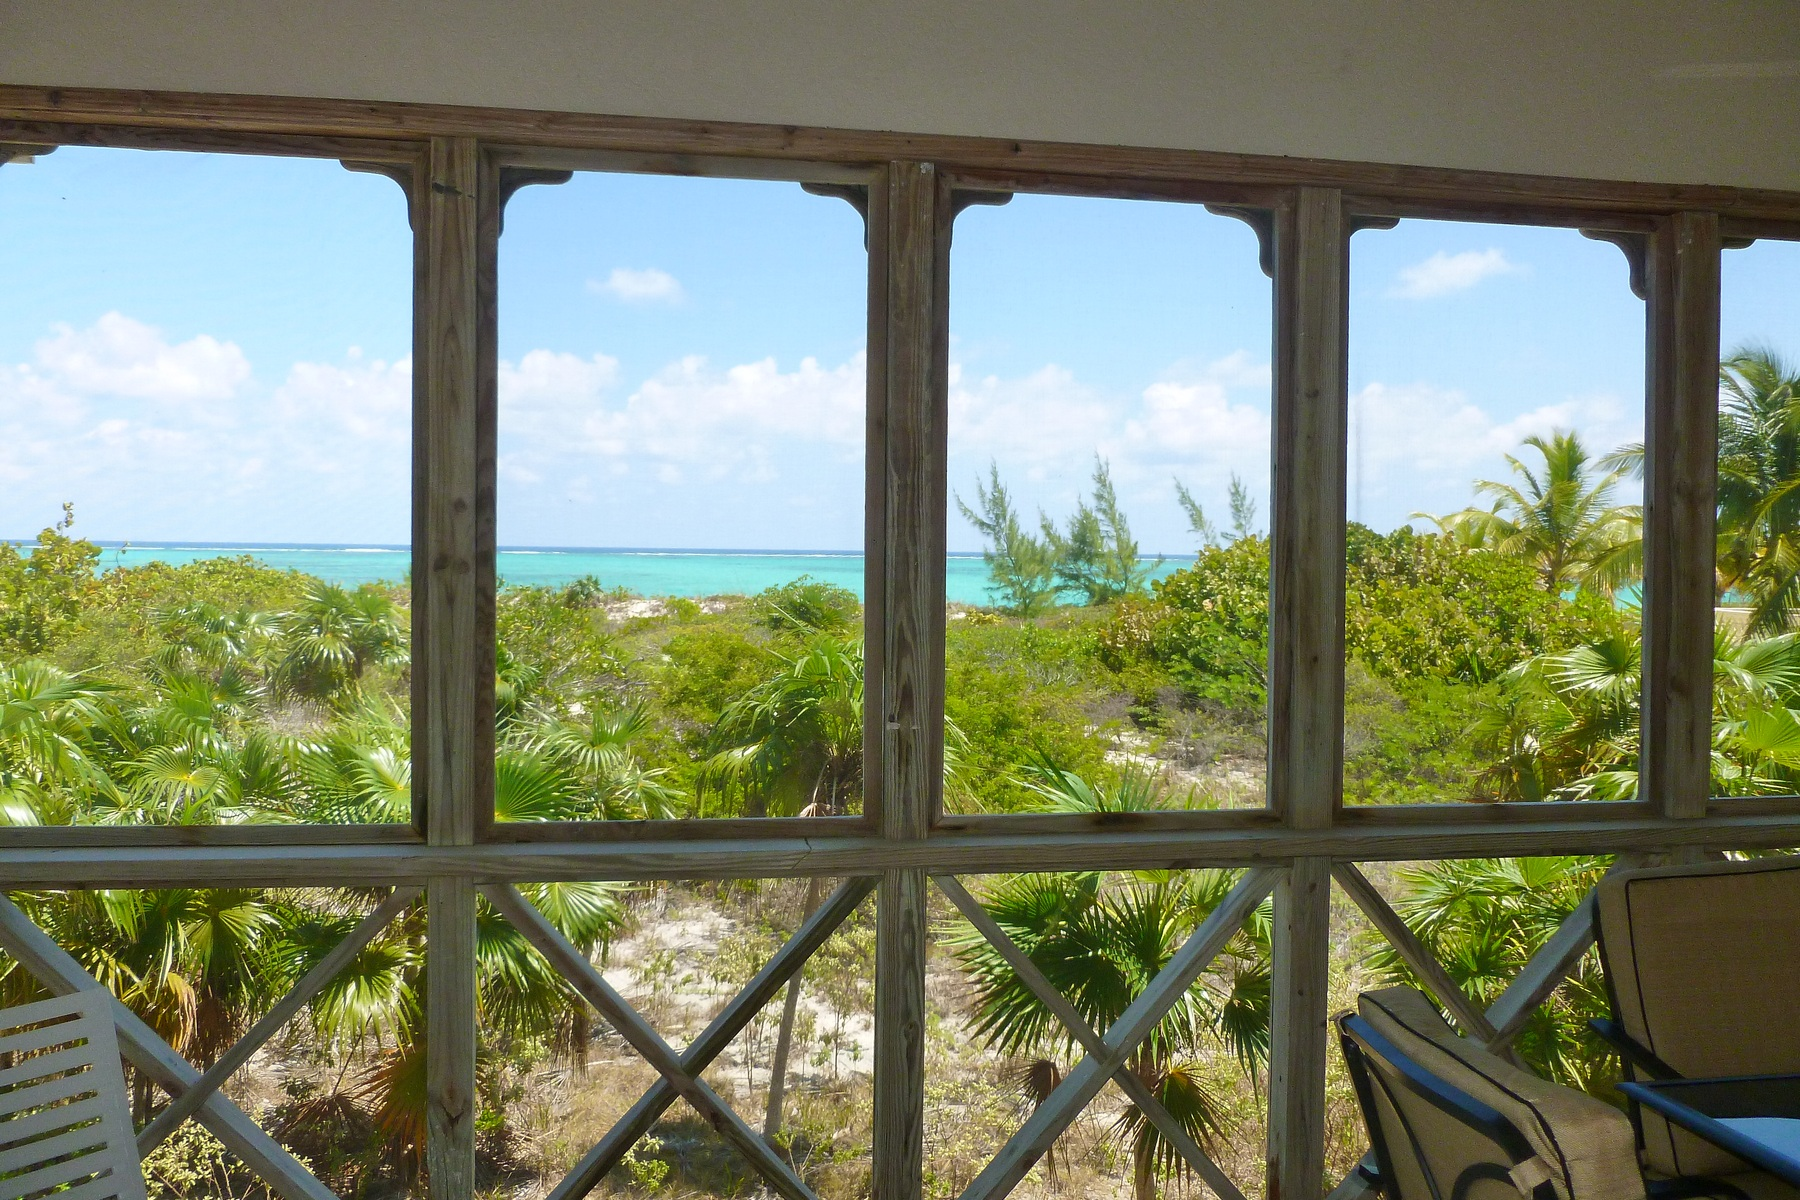 Additional photo for property listing at Whitby Residential Home Oceanview Whitby, Caicos Del Norte TCI BWI Islas Turcas Y Caicos